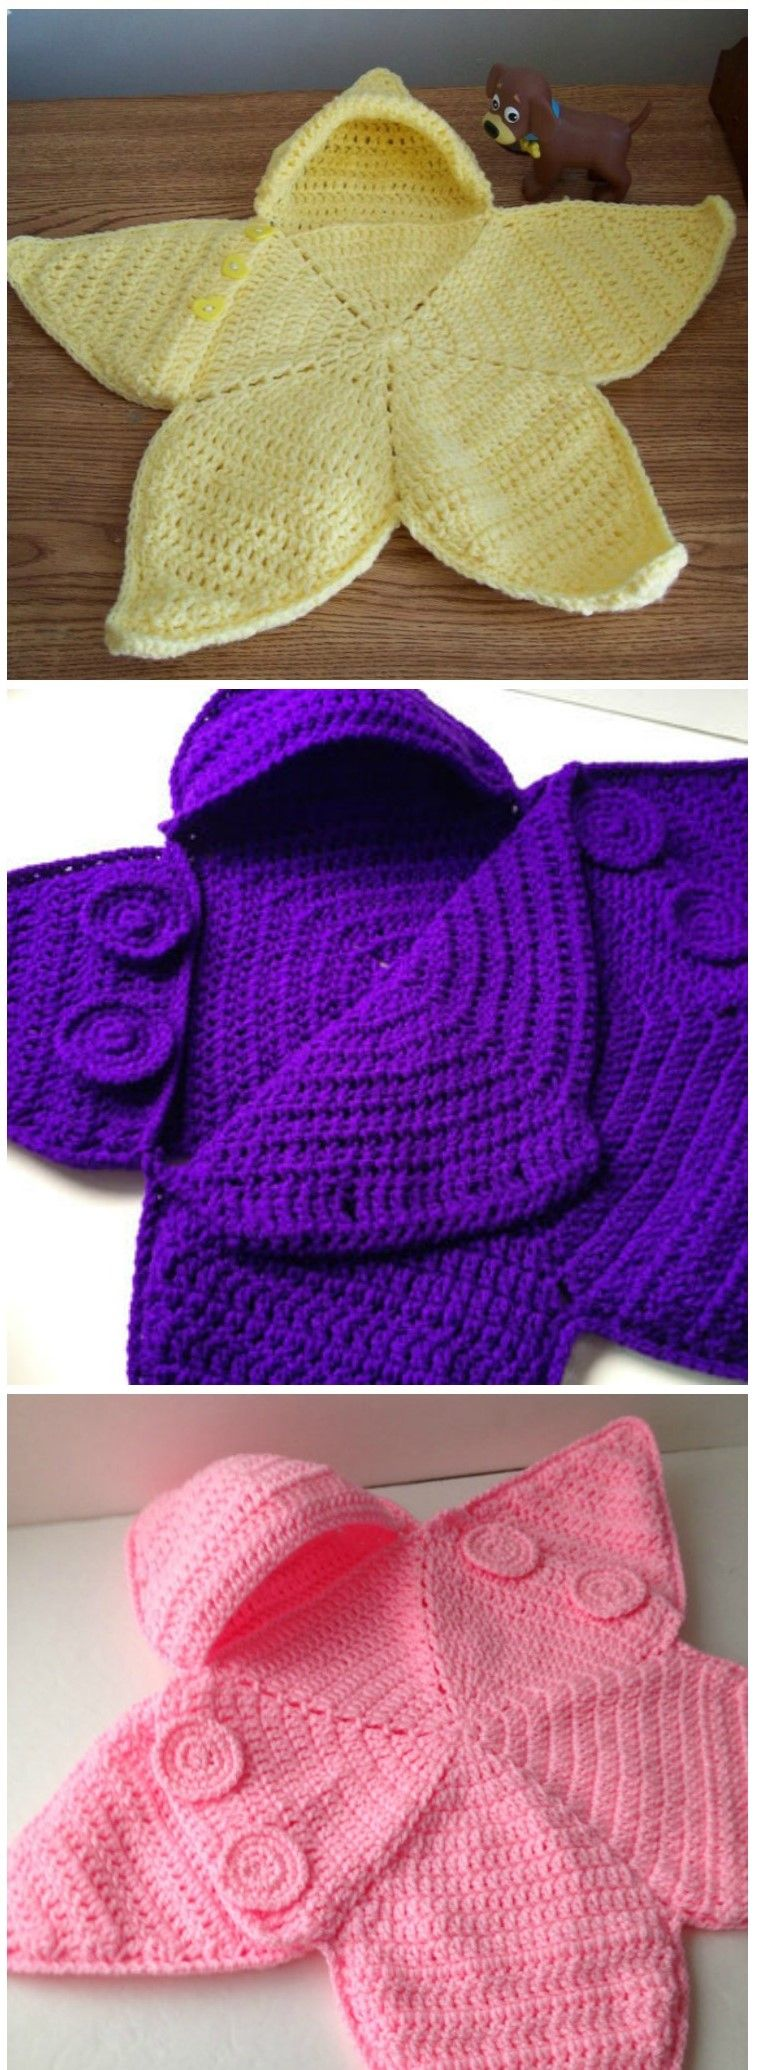 Free Patterns Amp Tutorials Crochet Baby Baby Bunting